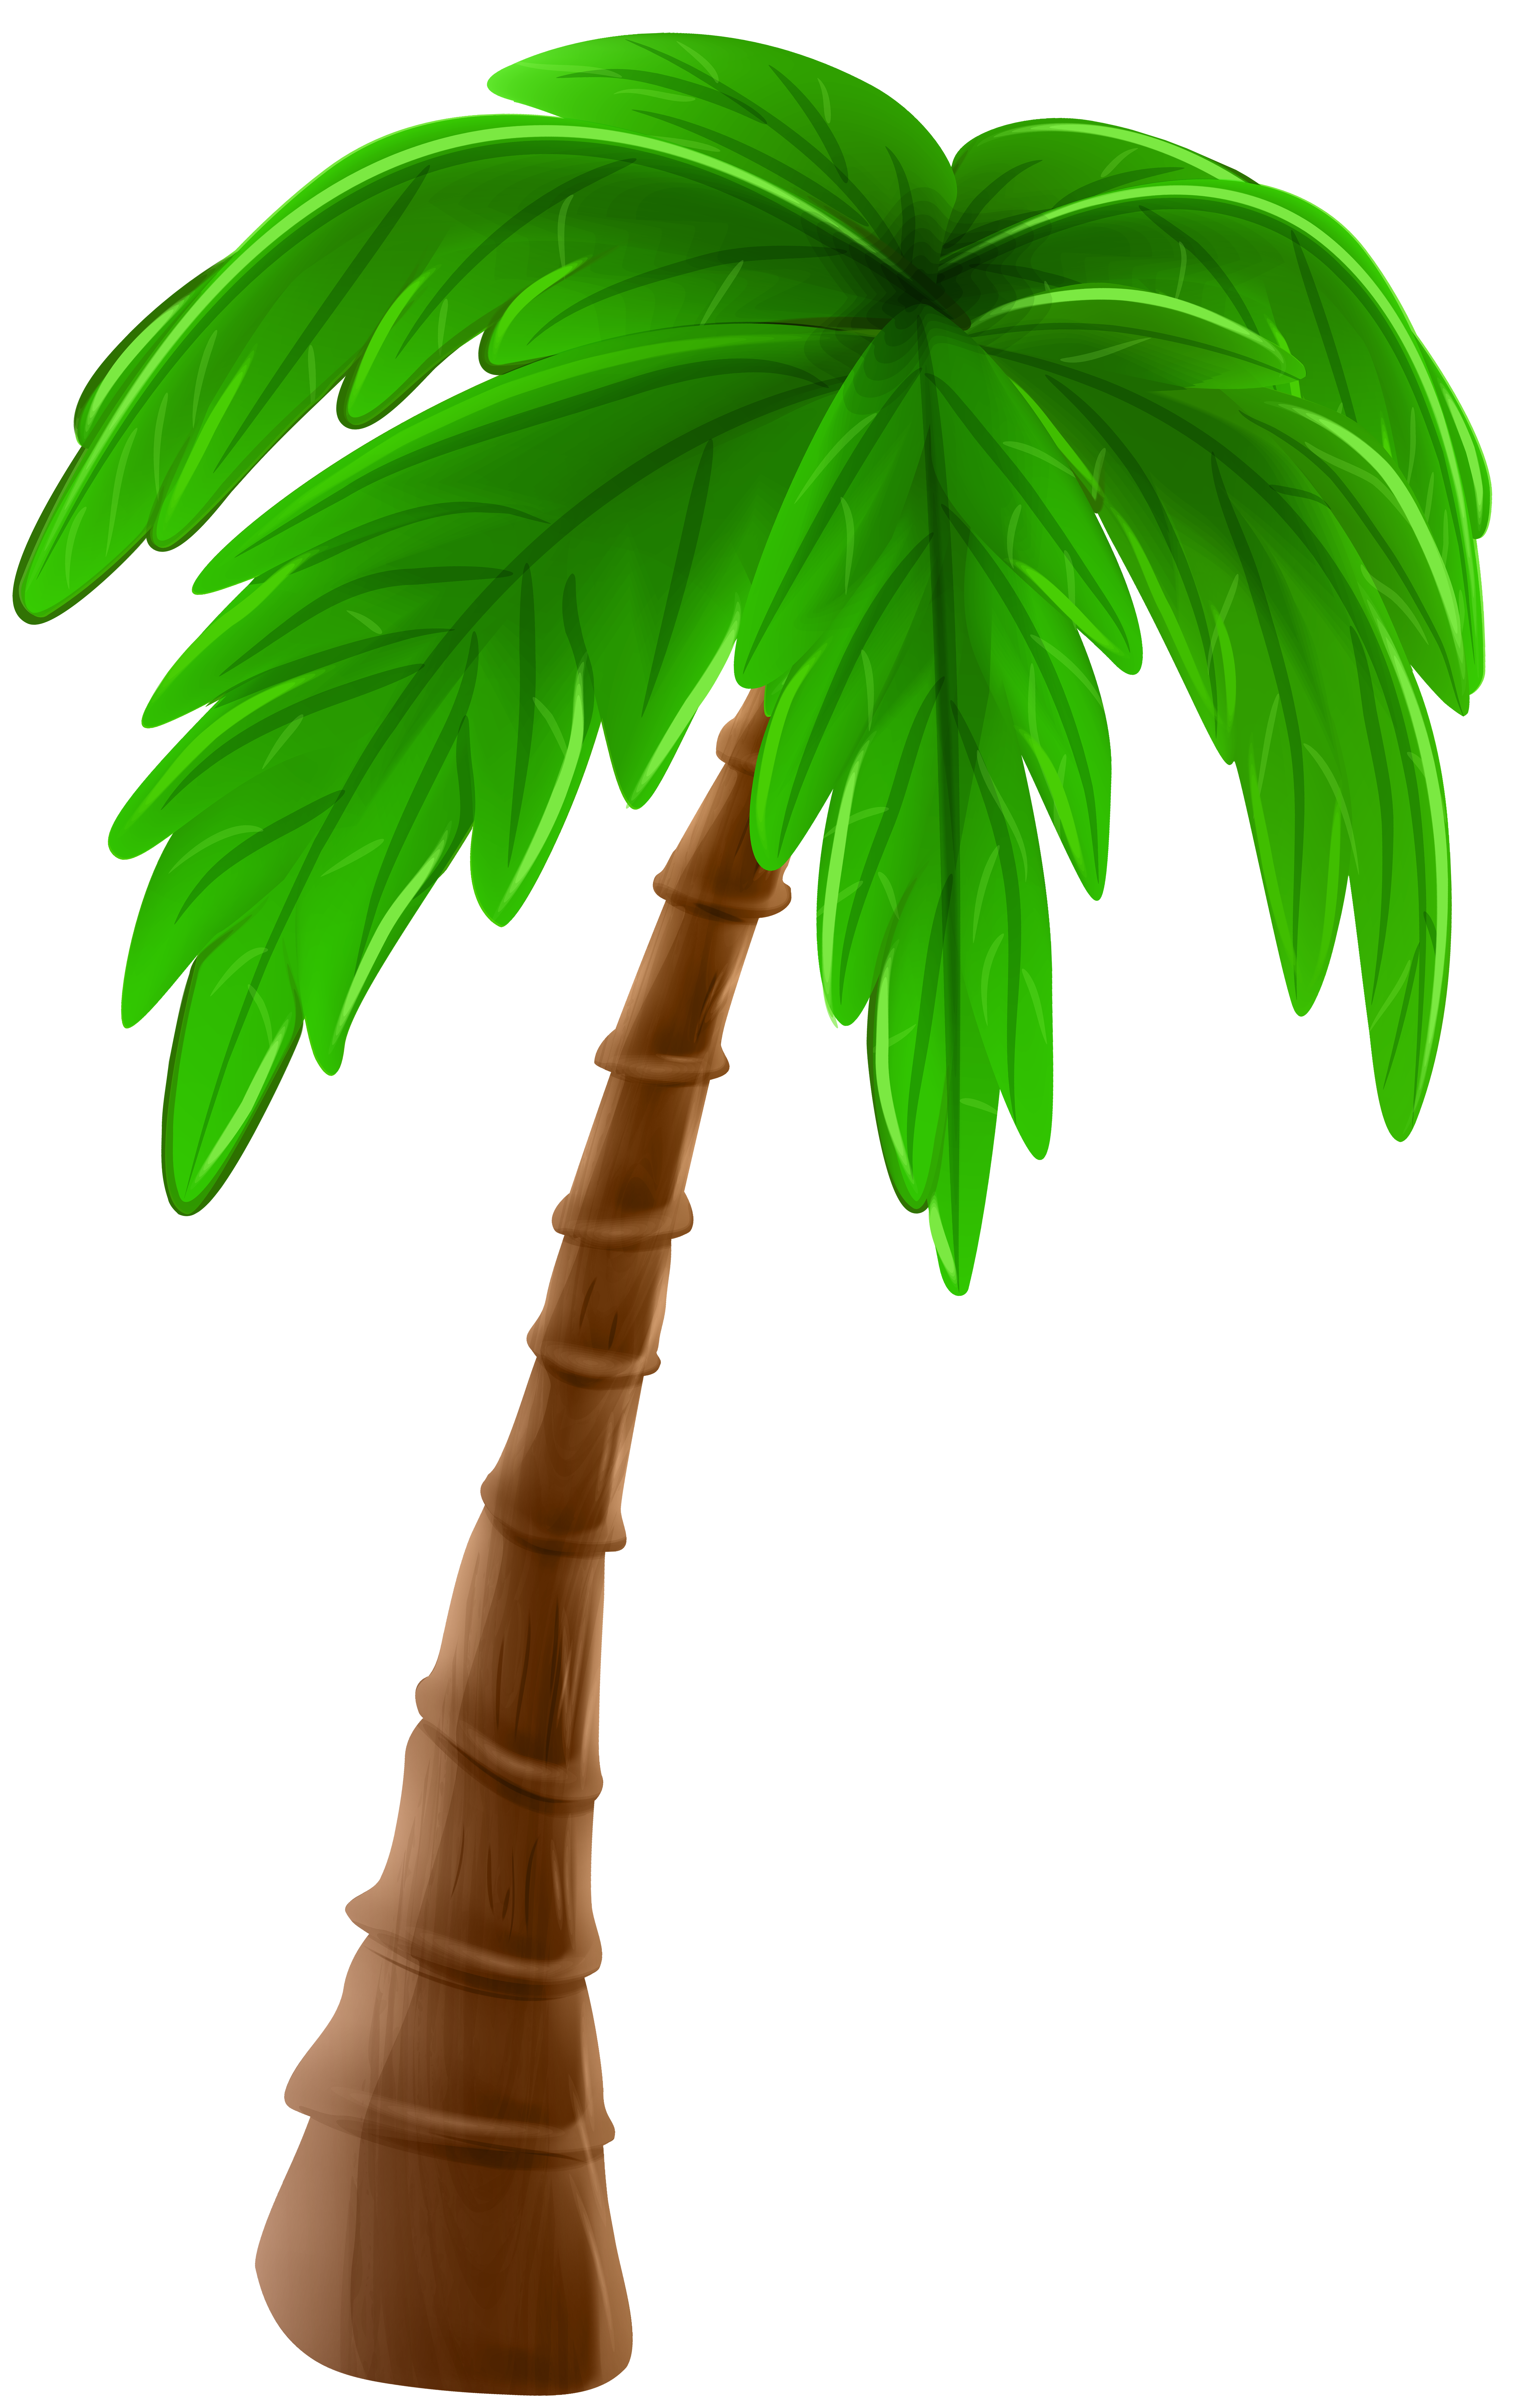 Palm clip art image. Tree cartoon png png royalty free